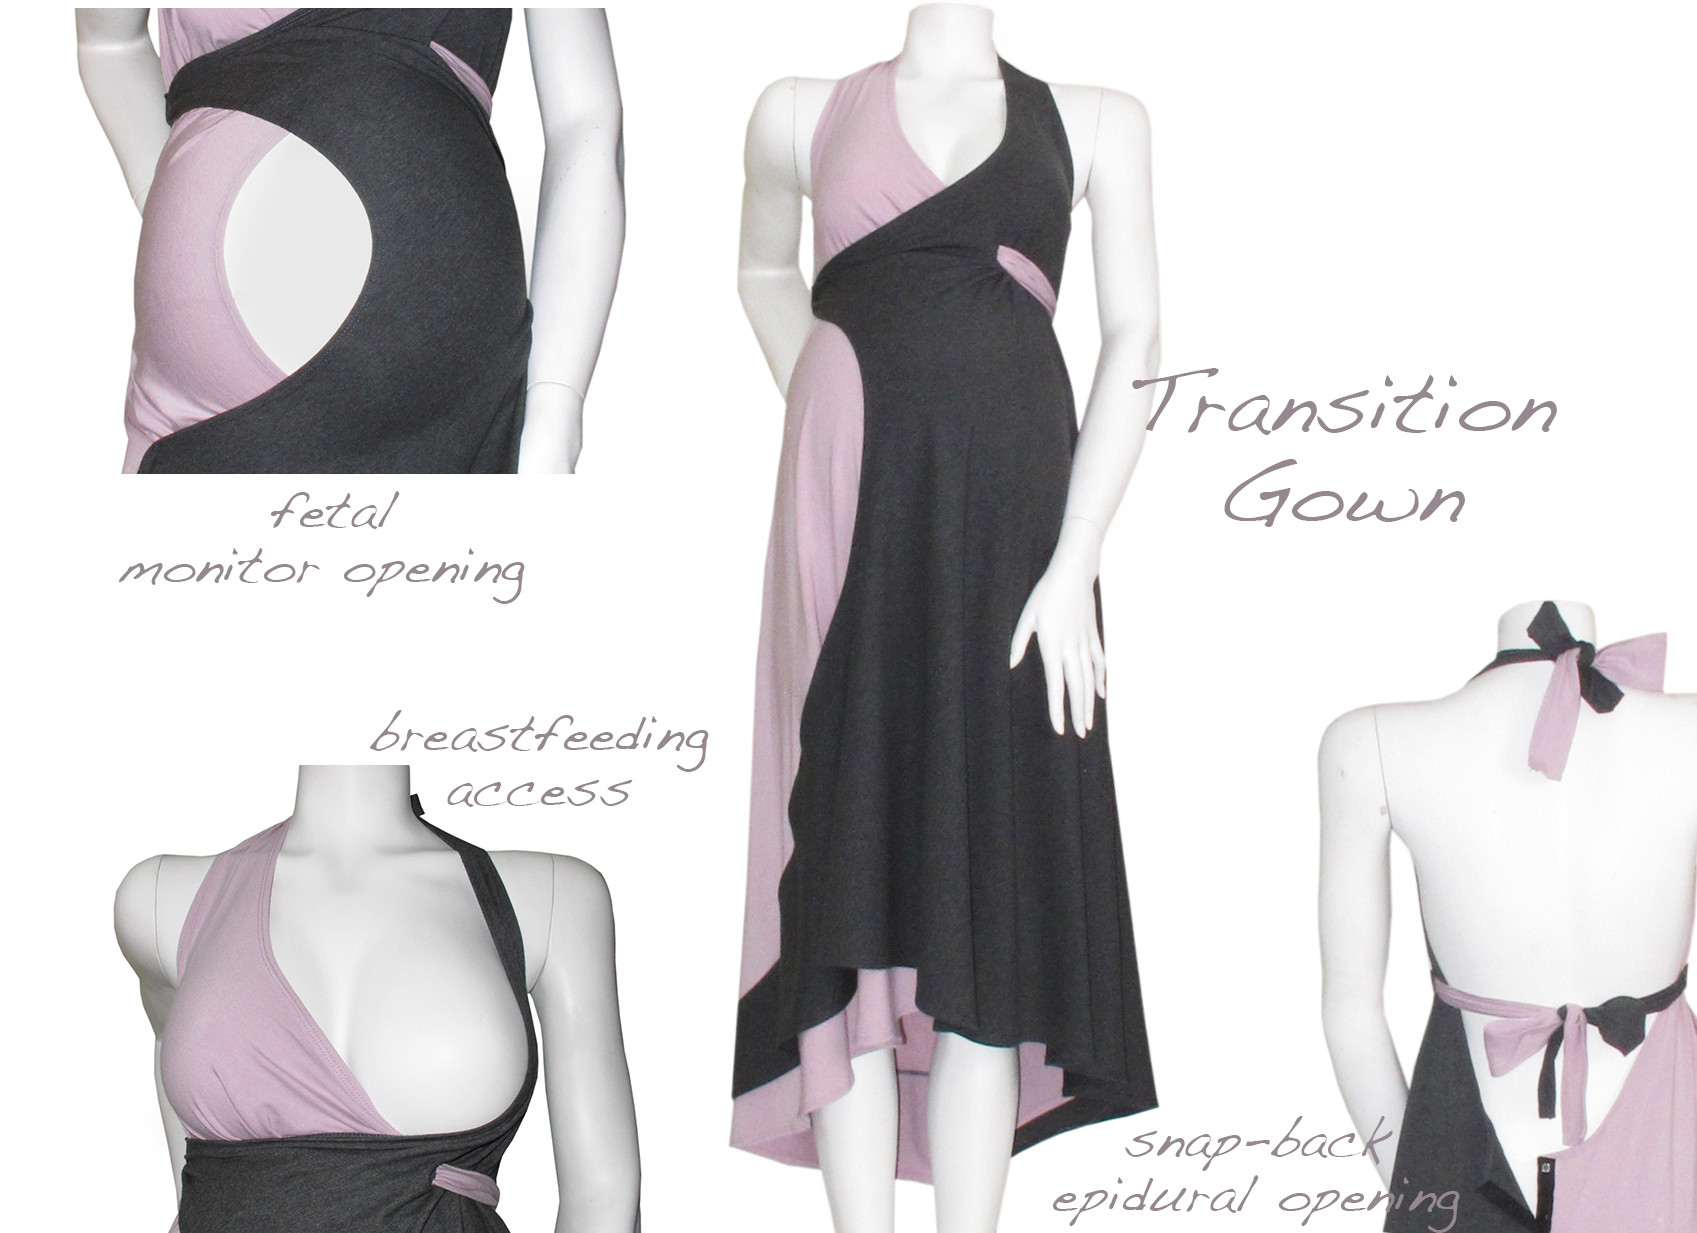 pretty pushers transition gown features